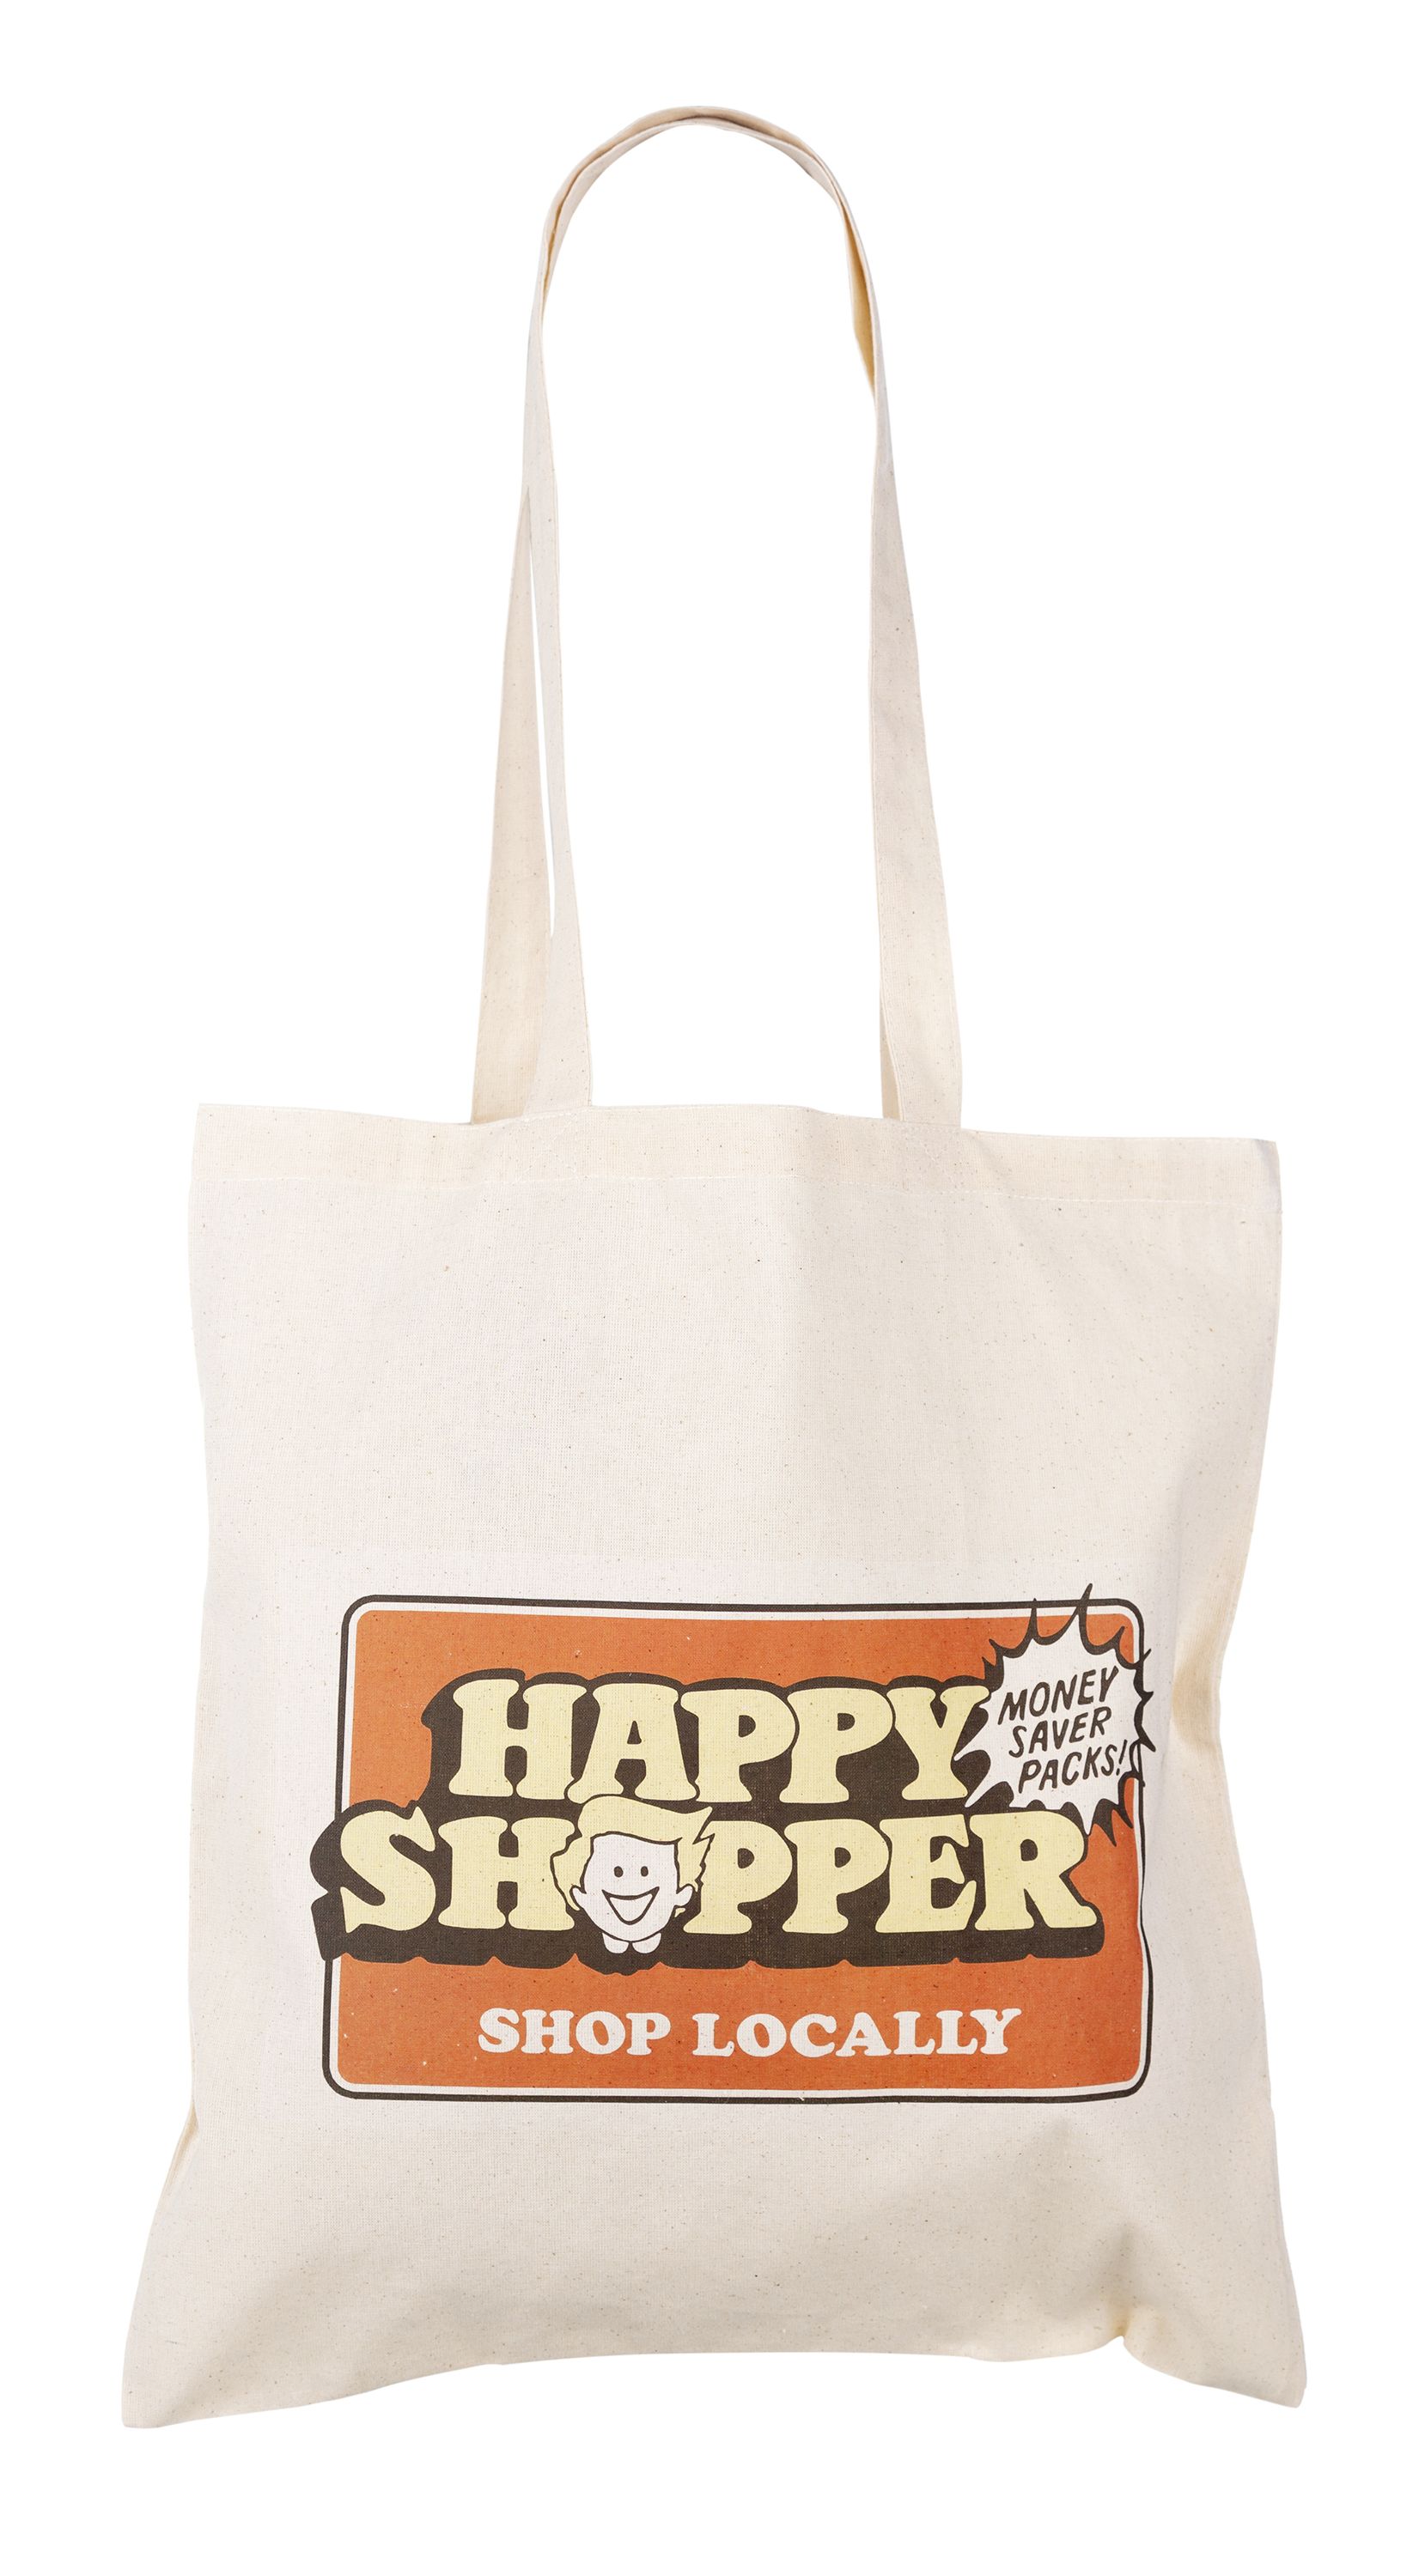 Happy Shopper Tote Bag - Printed on a 100% cotton long handled tote shopper  bag - Bag itself is a ecru beige colour and measures approx 14.5